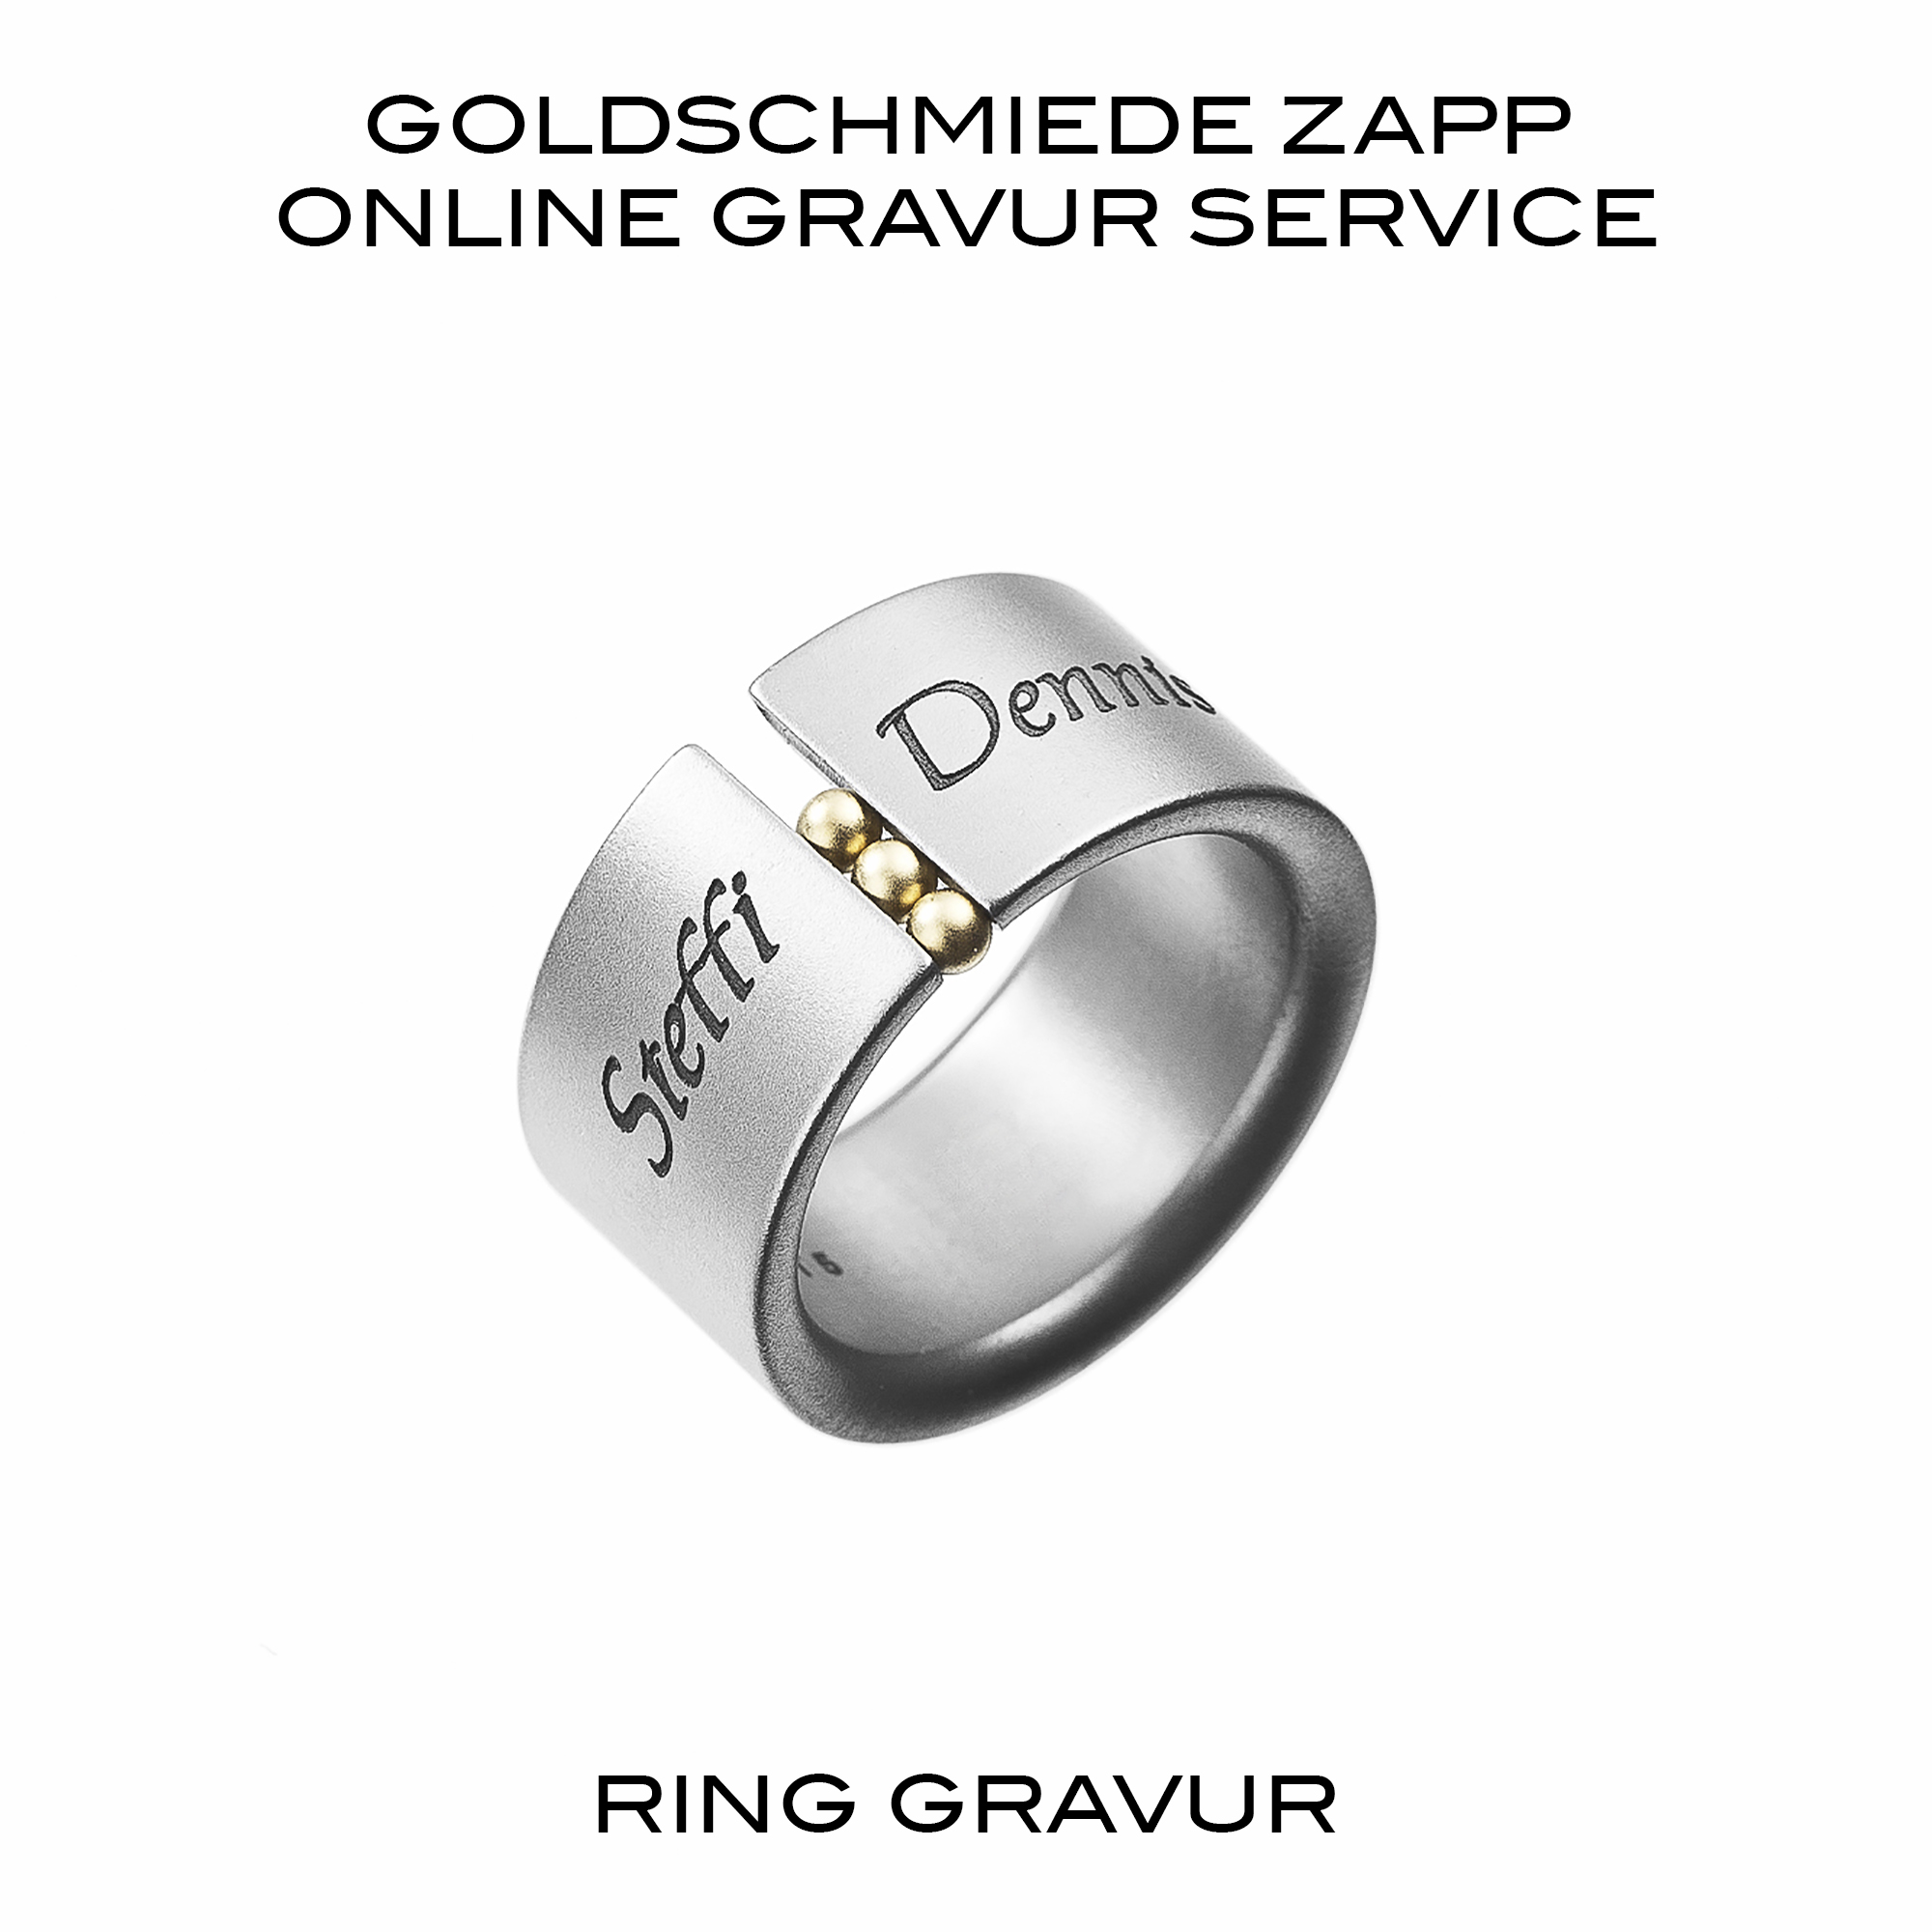 edelstahl ring gravieren goldschmiede juwelier zapp seit 1907. Black Bedroom Furniture Sets. Home Design Ideas